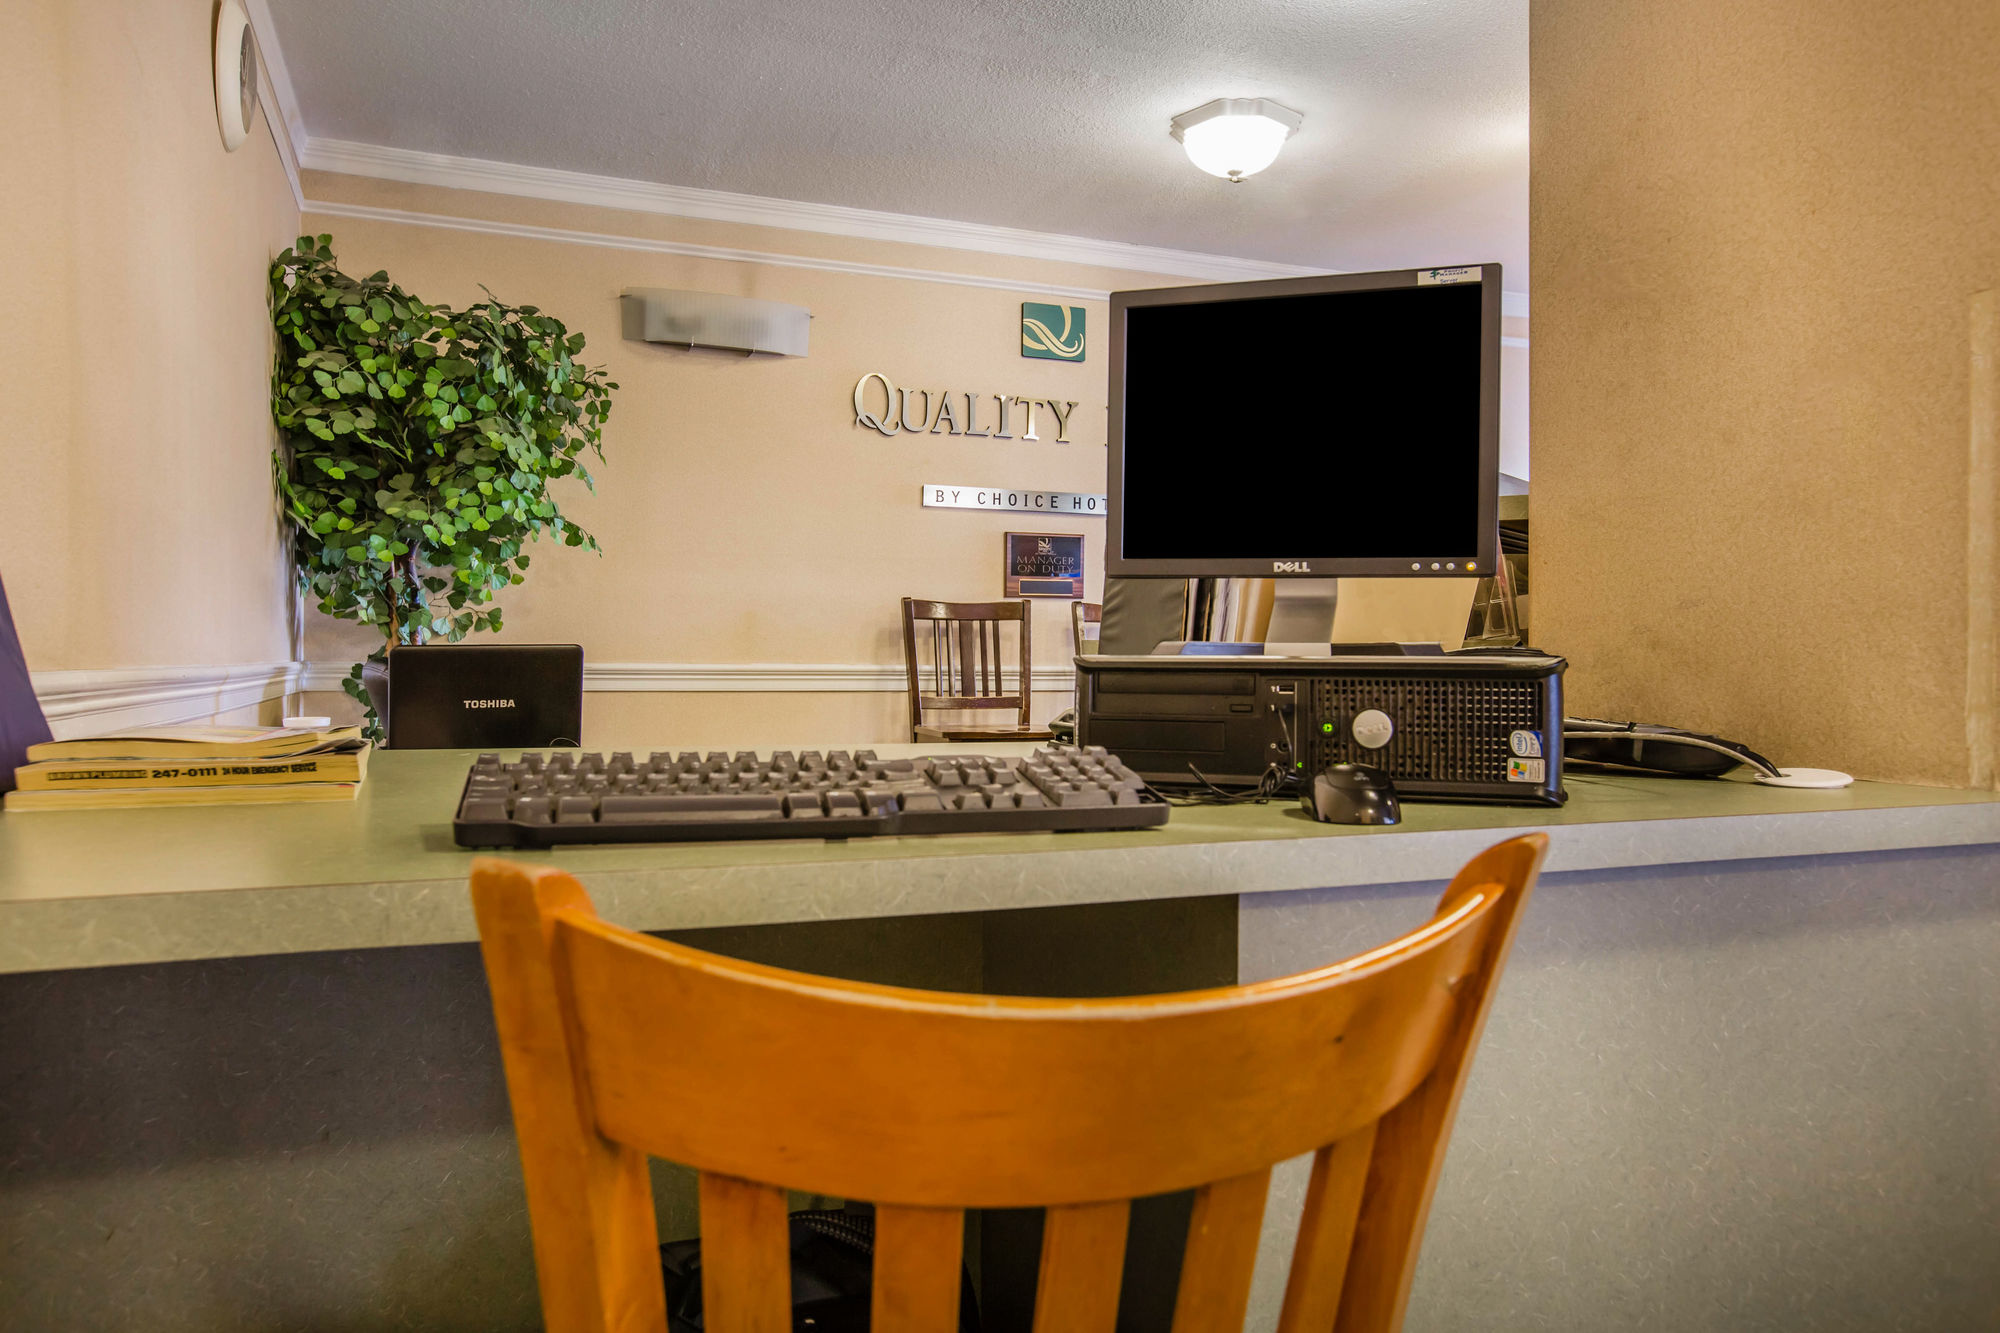 Redding Hotel Coupons for Redding, California - FreeHotelCoupons.com